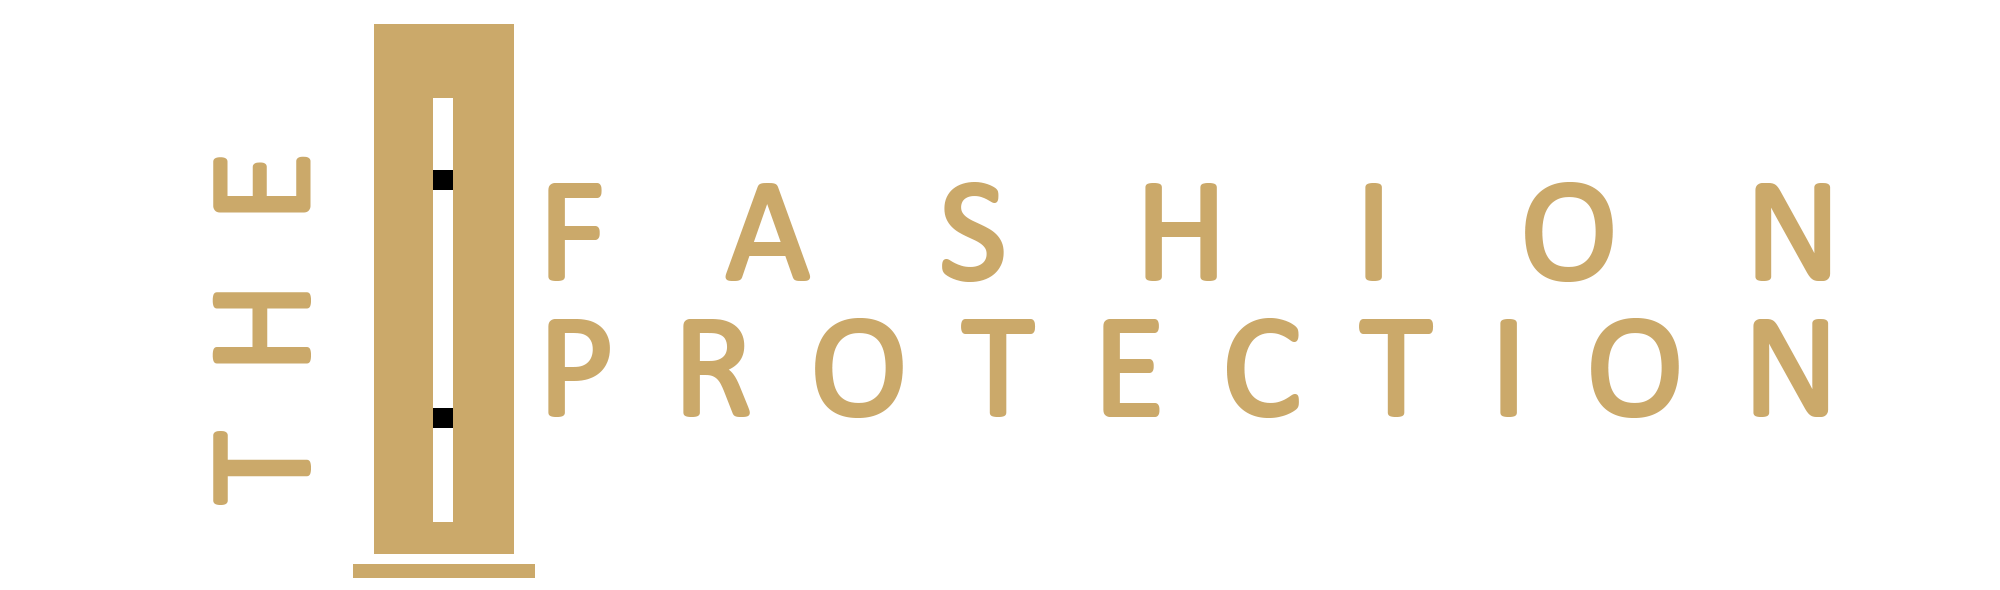 The Fashion Protection